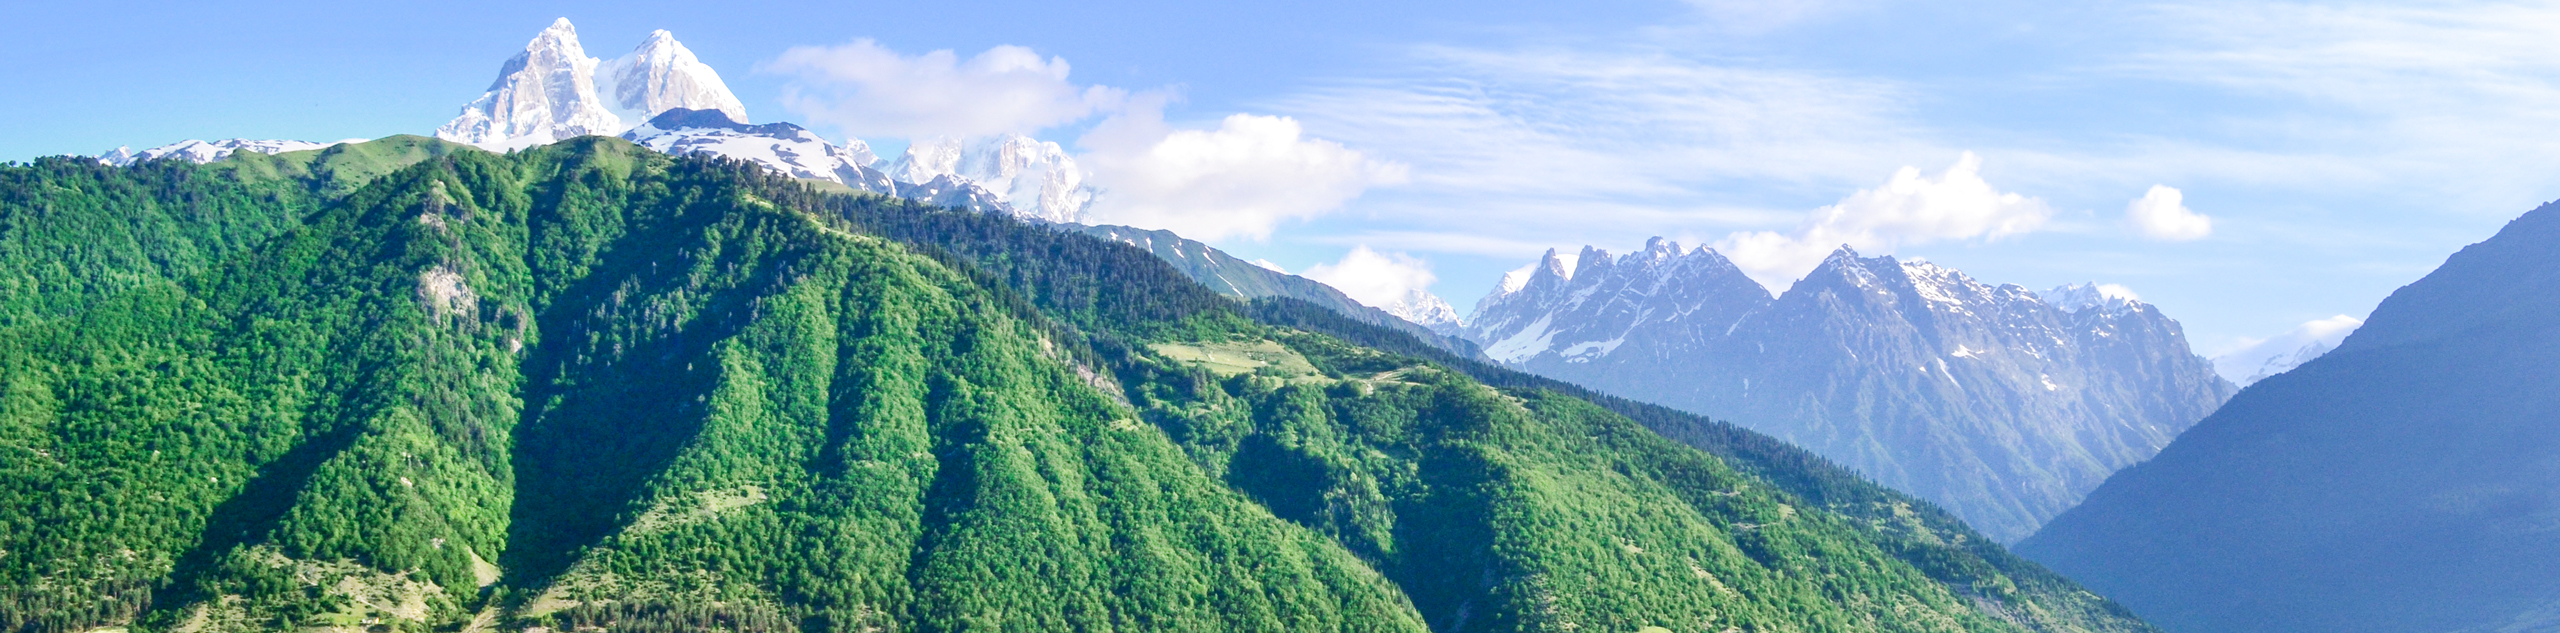 Hiking Tour of the Greater Caucasus Mountains